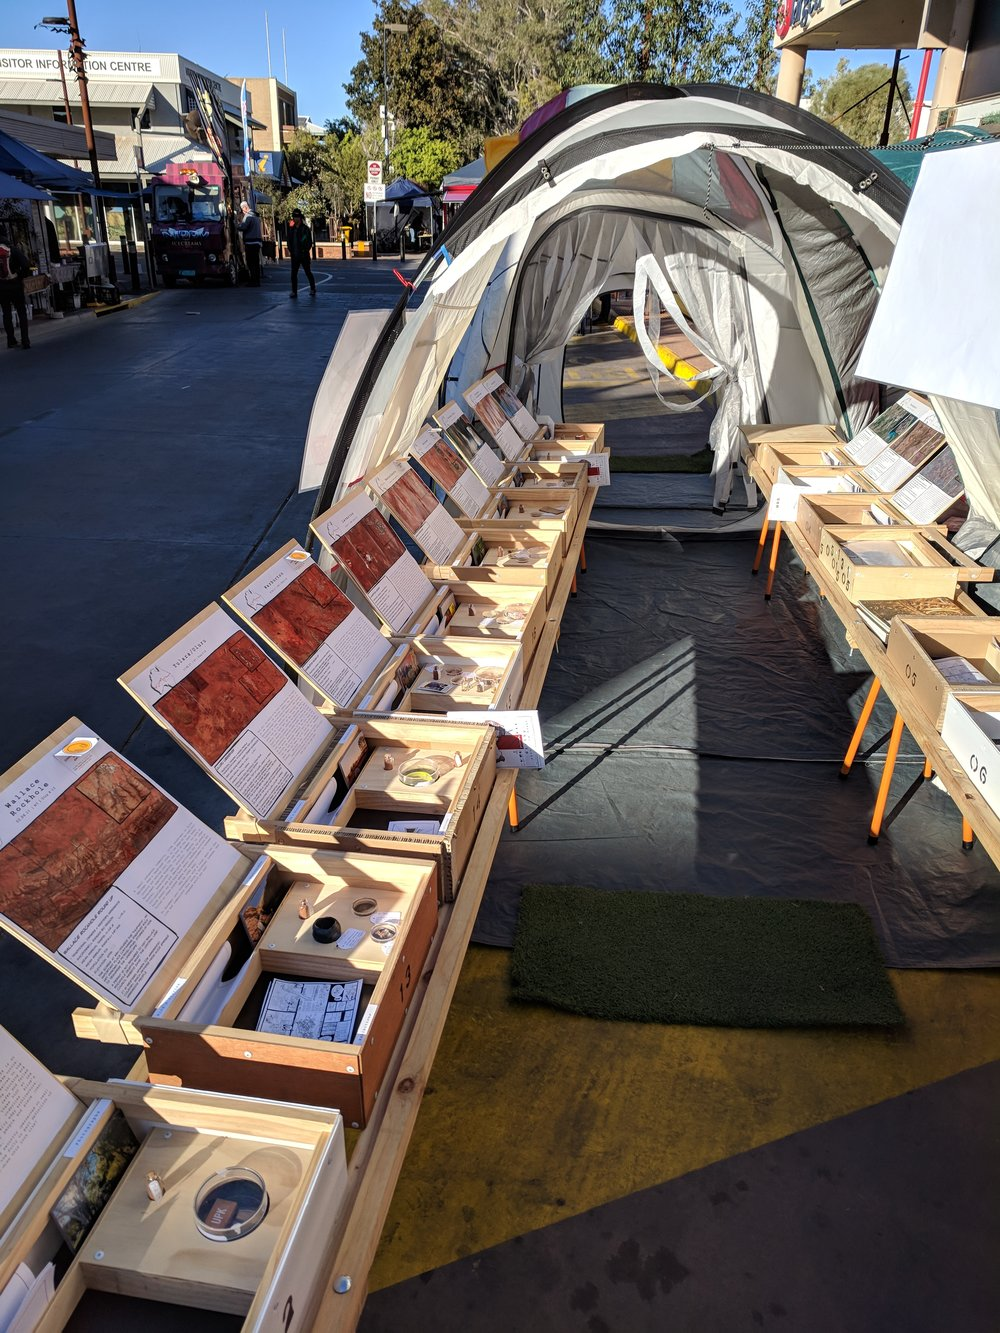 (Sun) Todd Mall Market set up 1.0